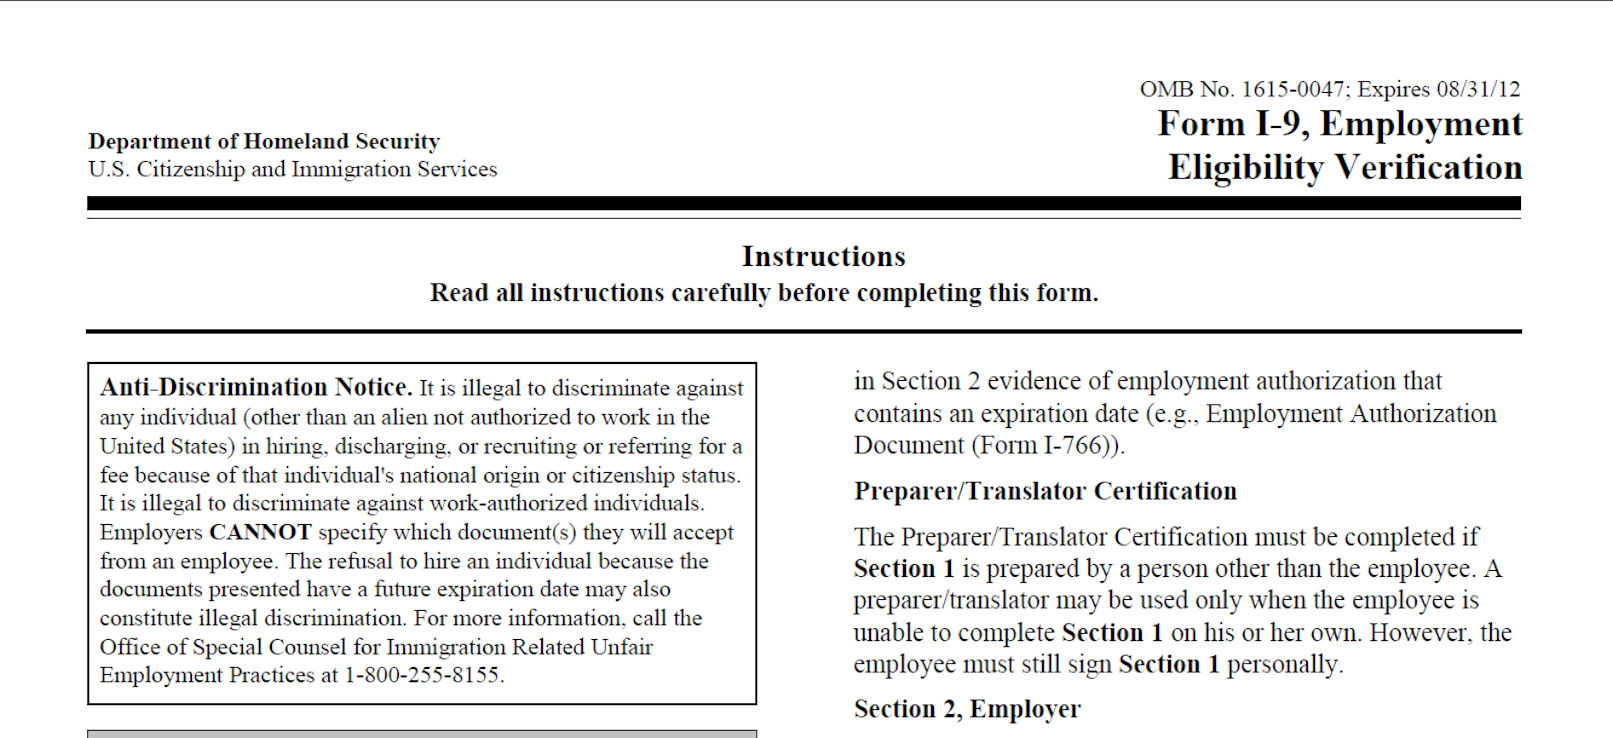 Expiring Form I-9 Still Valid, Says USCIS | Small Business Support